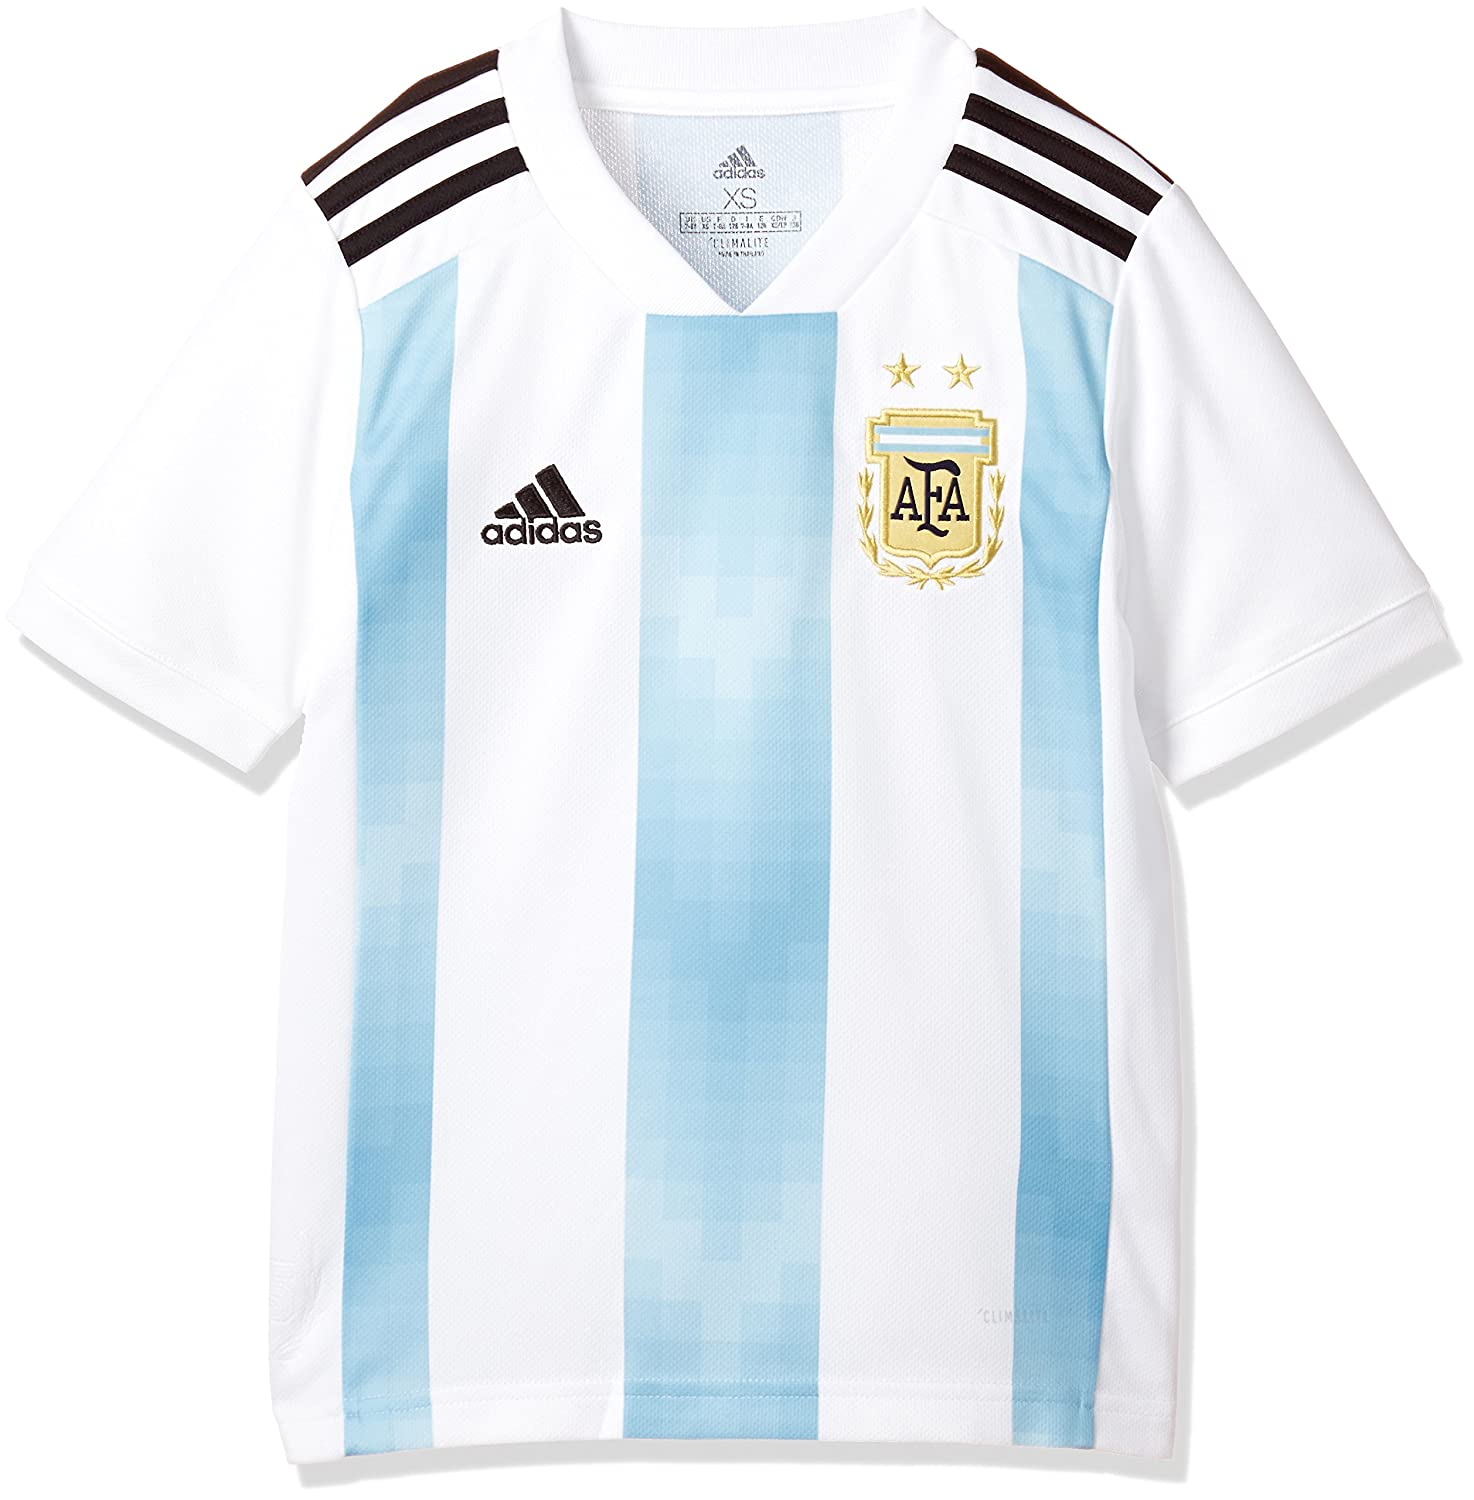 7a74fc1e3 Amazon.com   adidas 2018-2019 Argentina Home Football Soccer T-Shirt Jersey  (Kids)   Sports   Outdoors